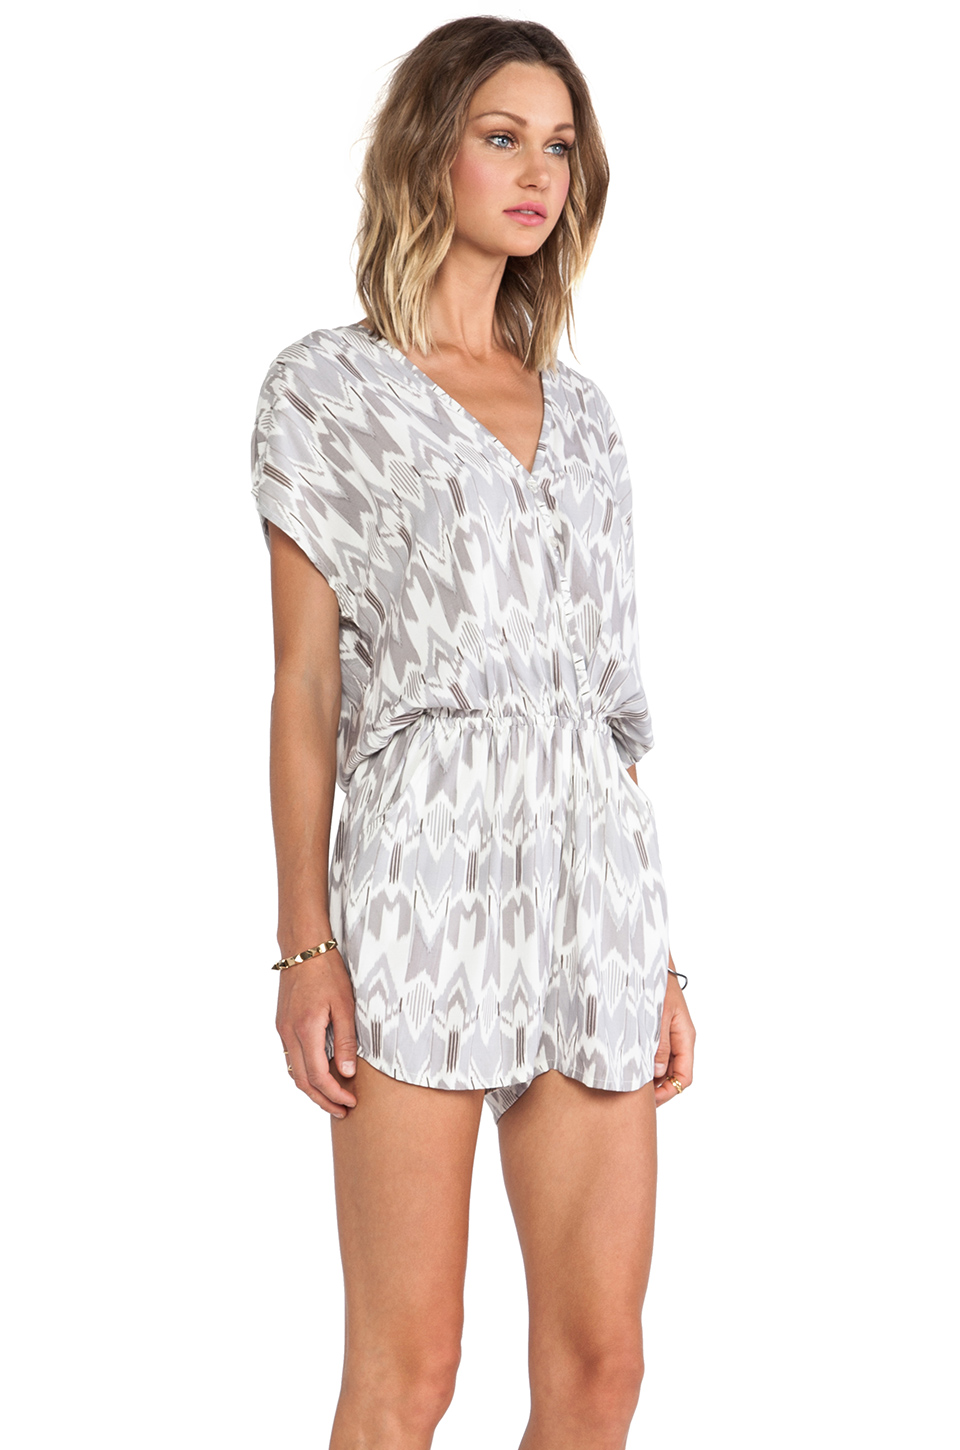 Cleobella Phoebe Playsuit in Tali Print from REVOLVEclothing.com